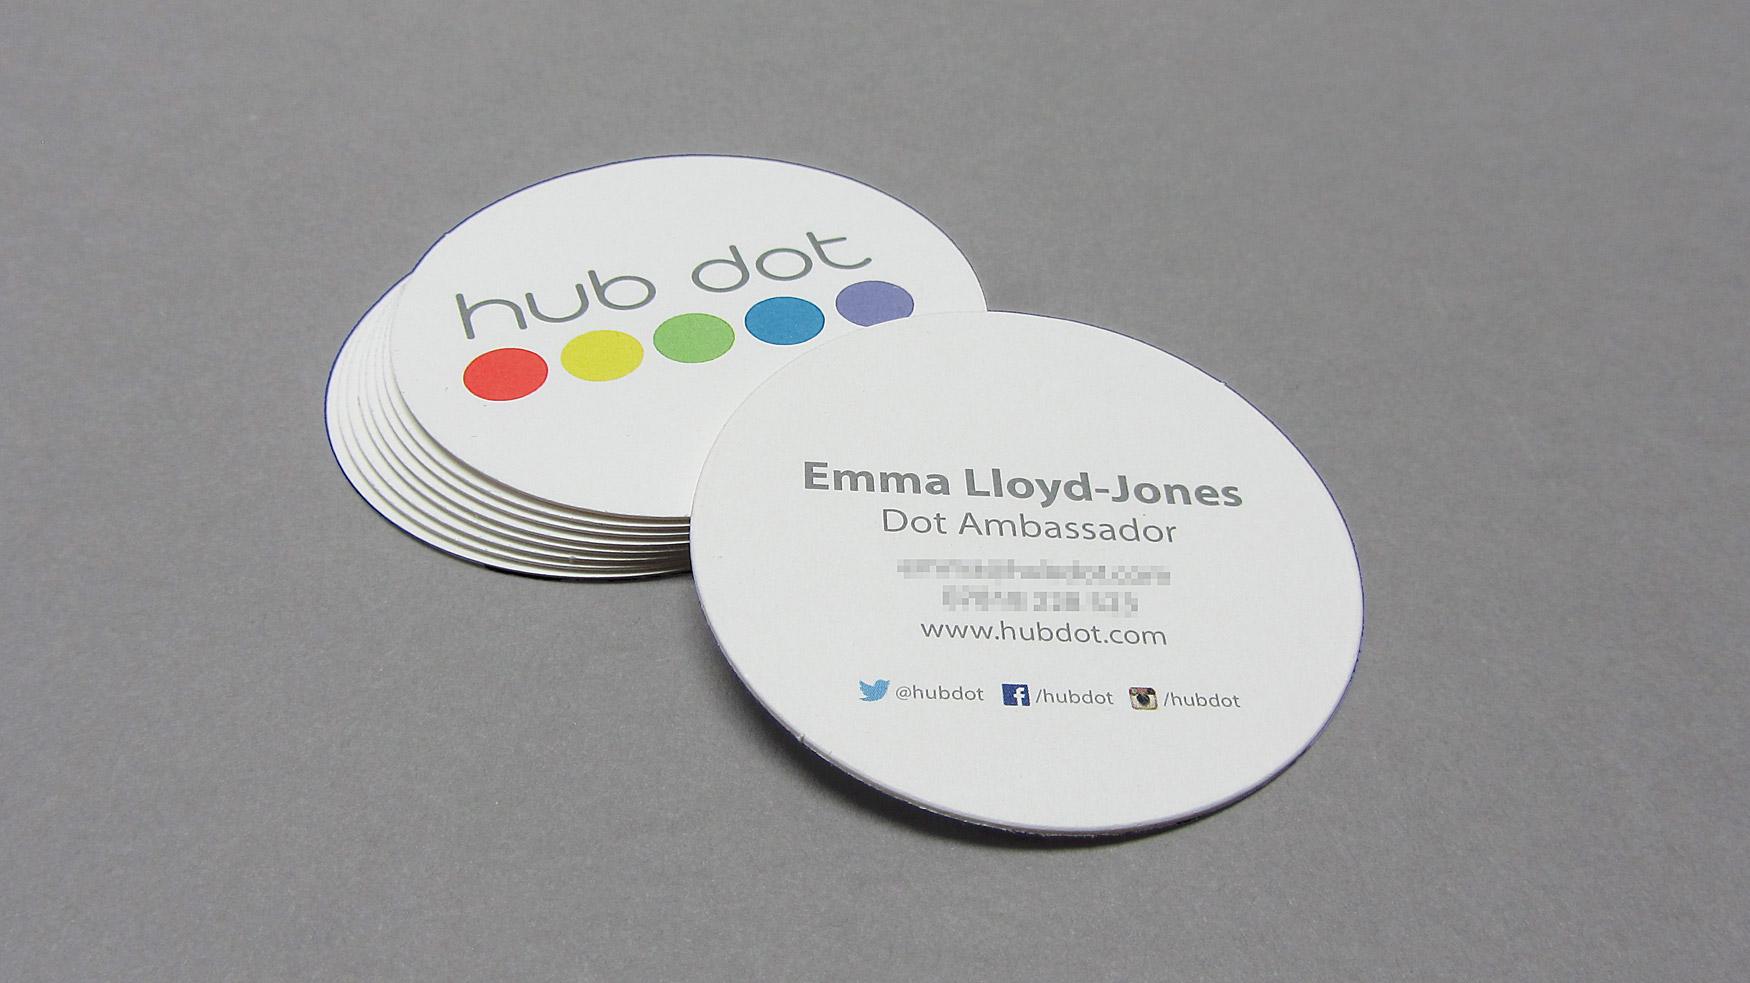 The hub london round business card freestyle print london printers uk the hub london round business card colourmoves